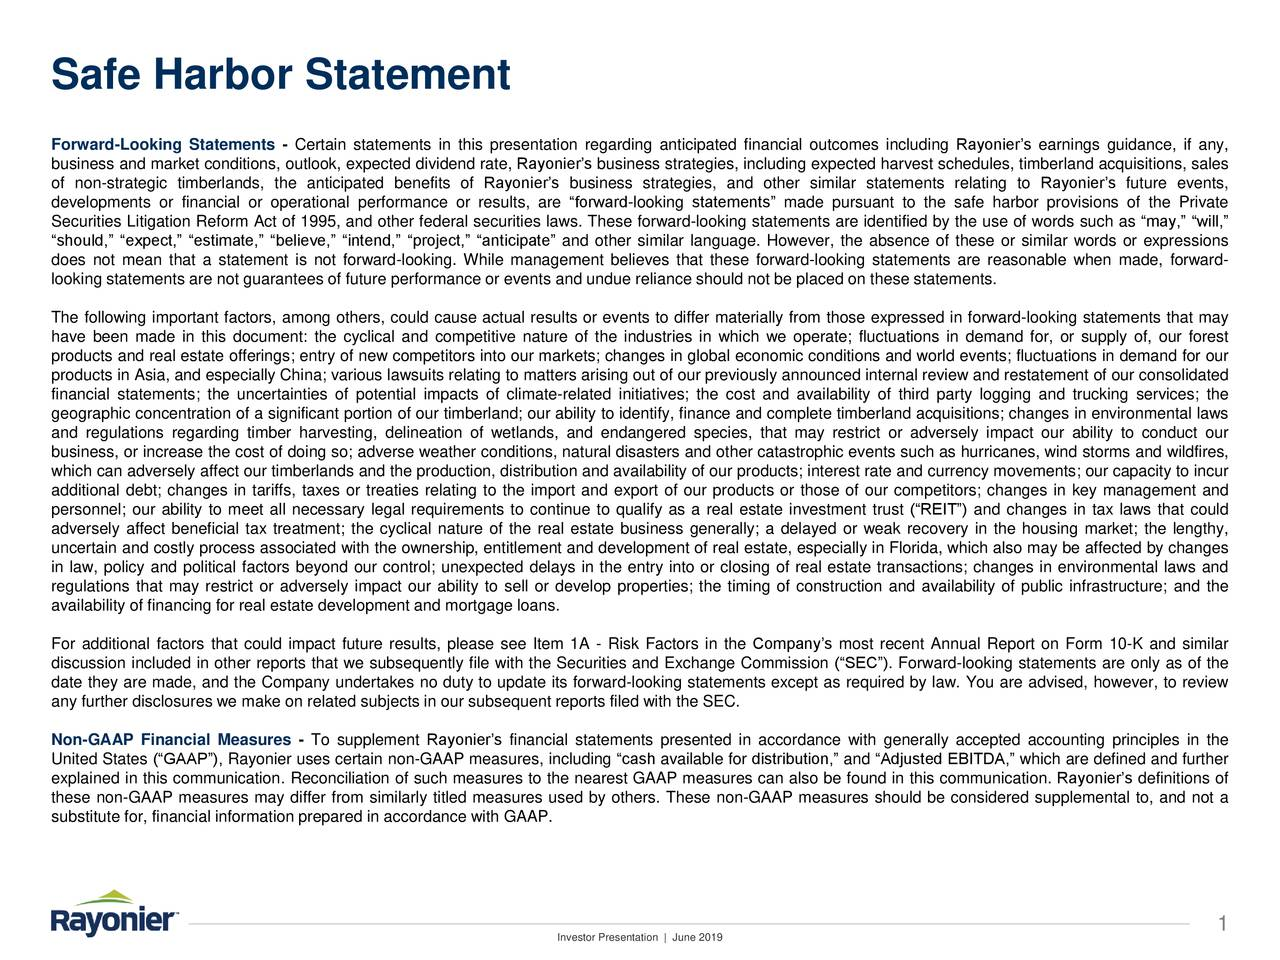 """Forward-Looking Statements - Certain statements in this presentation regarding anticipated financial outcomes including Rayonier's earnings guidance, if any, business and market conditions, outlook, expected dividend rate, Rayonier's business strategies, including expected harvest schedules, timberland acquisitions, sales of non-strategic timberlands, the anticipated benefits of Rayonier's business strategies, and other similar statements relating to Rayonier's future events, developments or financial or operational performance or results, are """"forward-looking statements"""" made pursuant to the safe harbor provisions of the Private Securities Litigation Reform Act of 1995, and other federal securities laws. These forward-looking statements are identified by the use of words such as """"may,"""" """"will,"""" """"should,"""" """"expect,"""" """"estimate,"""" """"believe,"""" """"intend,"""" """"project,"""" """"anticipate"""" and other similar language. However, the absence of these or similar words or expressions does not mean that a statement is not forward-looking. While management believes that these forward-looking statements are reasonable when made, forward- looking statements are not guarantees of future performance or events and undue reliance should not be placed on these statements. The following important factors, among others, could cause actual results or events to differ materially from those expressed in forward-looking statements that may have been made in this document: the cyclical and competitive nature of the industries in which we operate; fluctuations in demand for, or supply of, our forest products and real estate offerings; entry of new competitors into our markets; changes in global economic conditions and world events; fluctuations in demand for our products in Asia, and especially China; various lawsuits relating to matters arising out of our previously announced internal review and restatement of our consolidated financial statements; the uncertainties of potential impacts of climate-related i"""